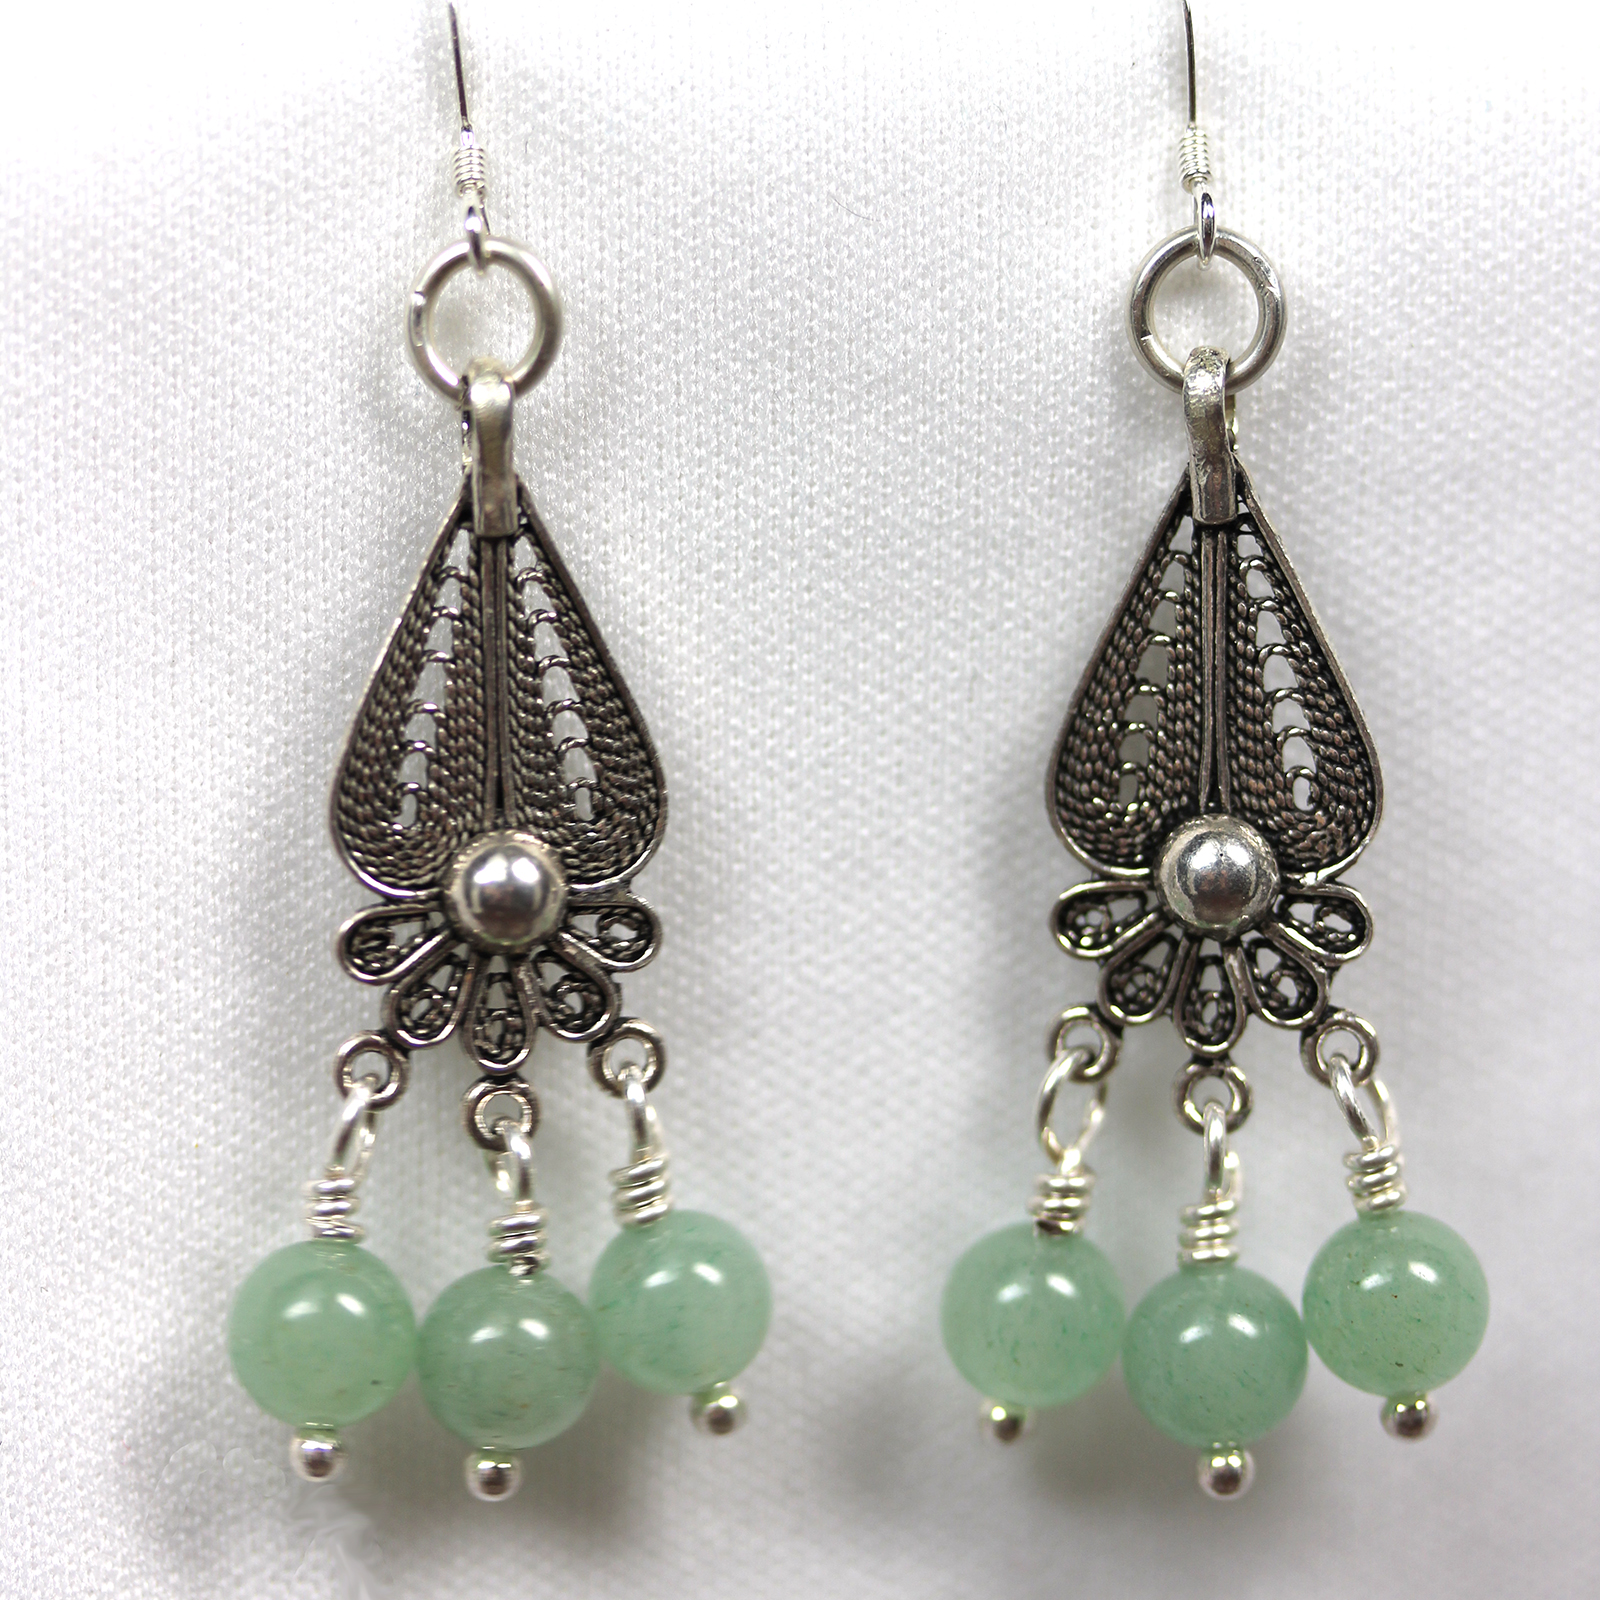 Sterling Silver Earrings with Jade Stones